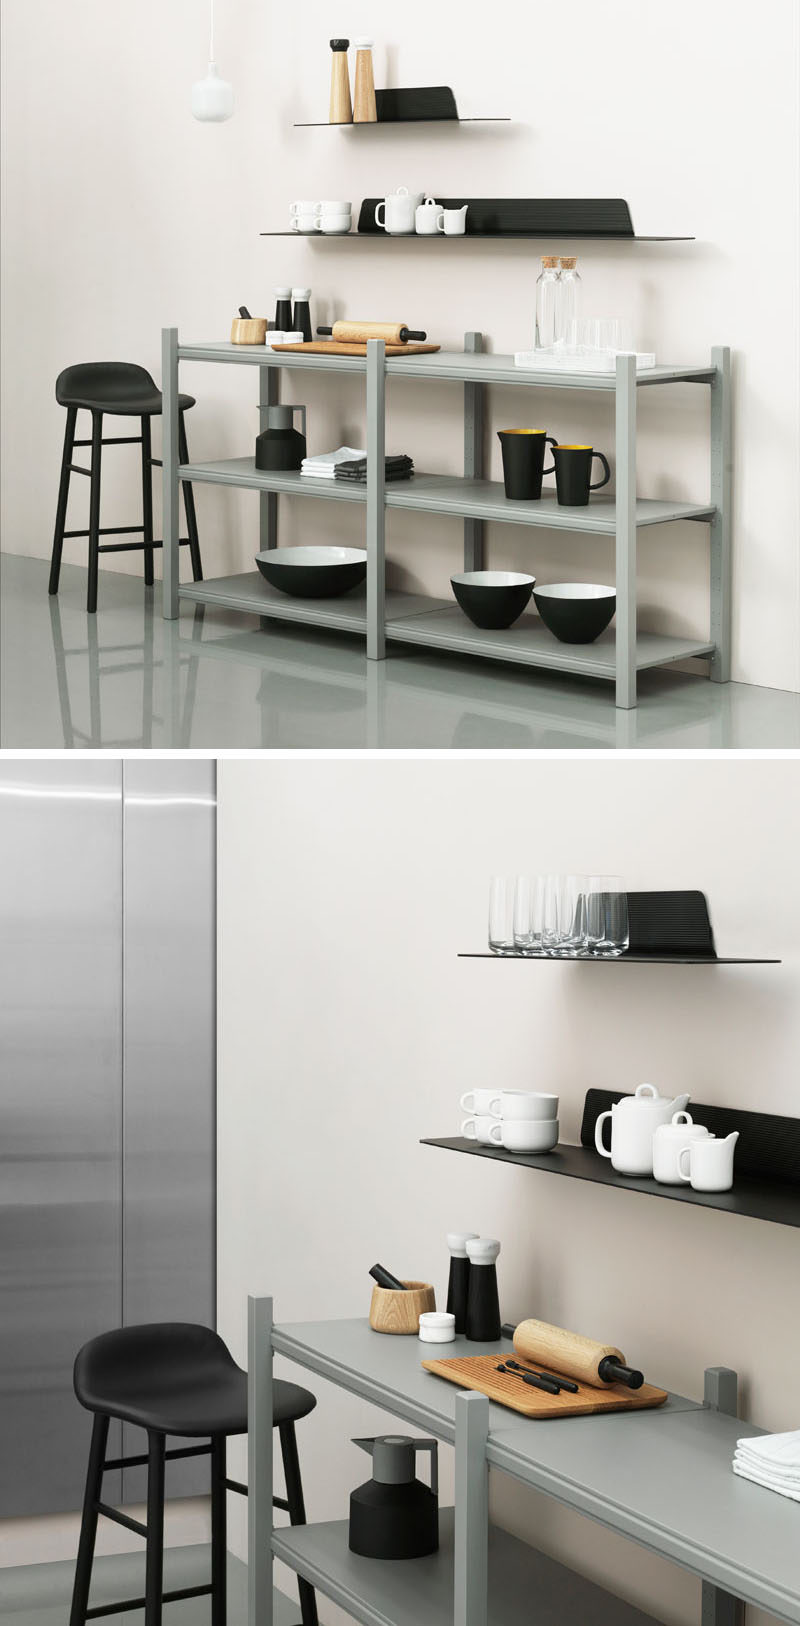 Jet, a thin, modern, minimalist shelf designed by Simon Legald for Normann Copenhagen, is a wall storage solution that combines horizontal and vertical lines to create a simple yet sturdy shelf with an industrial look that can be used to store and display objects of all sorts.